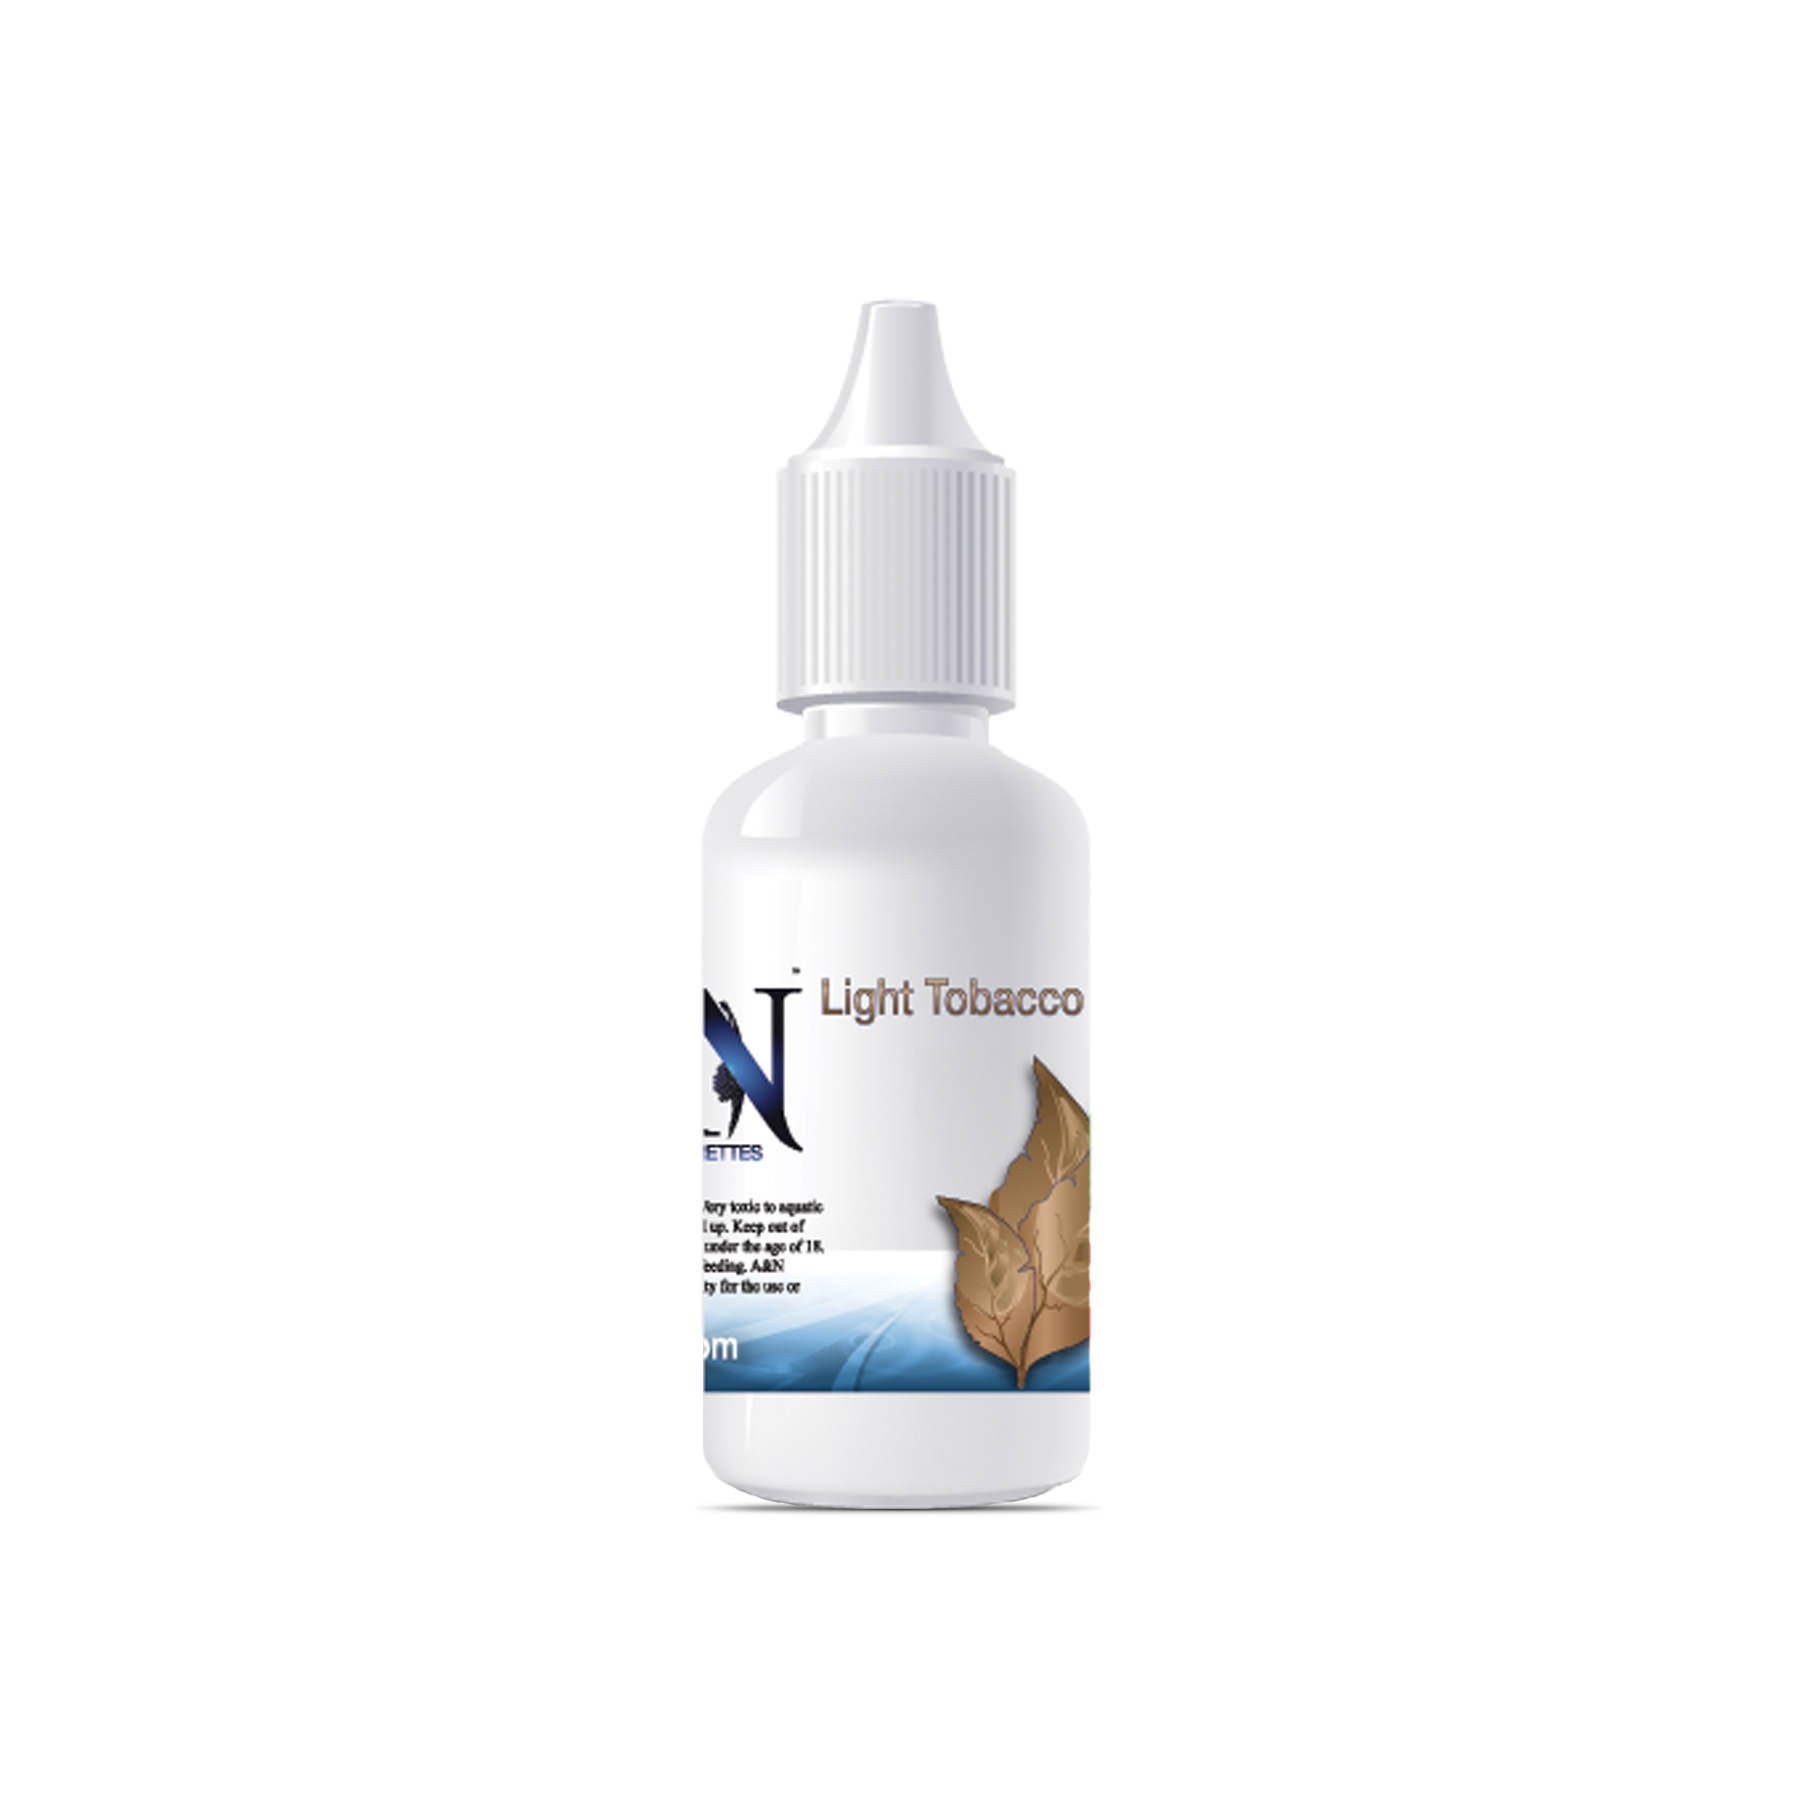 Vape Light Tobacco eLiquid Mild Tobacco